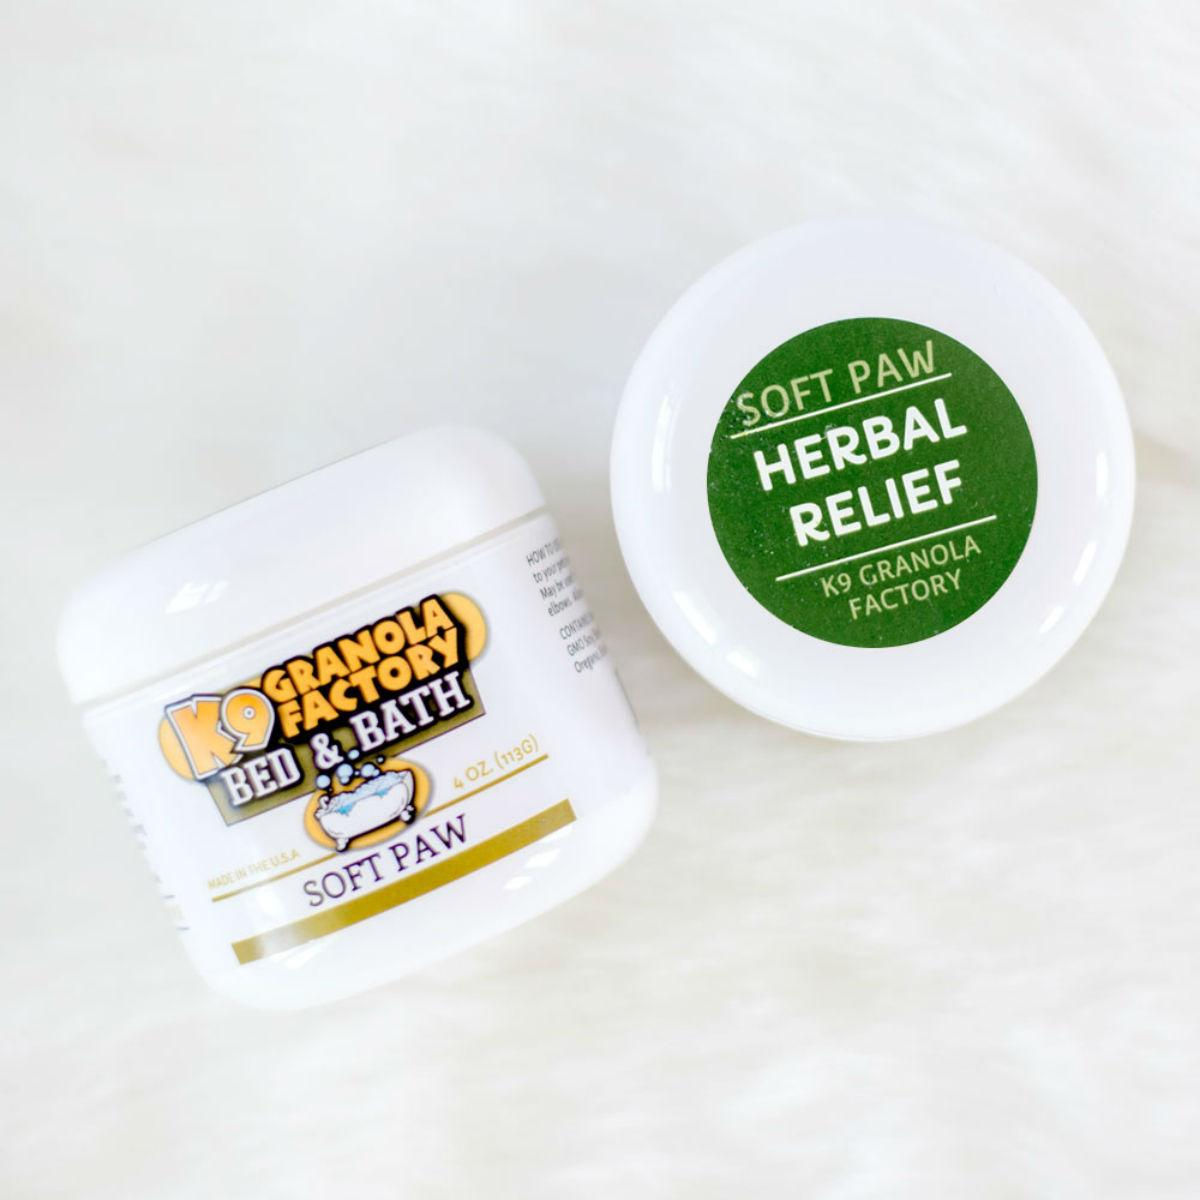 K9 Granola Factory Herbal Relief Dog Soft Paw Repair Treatment